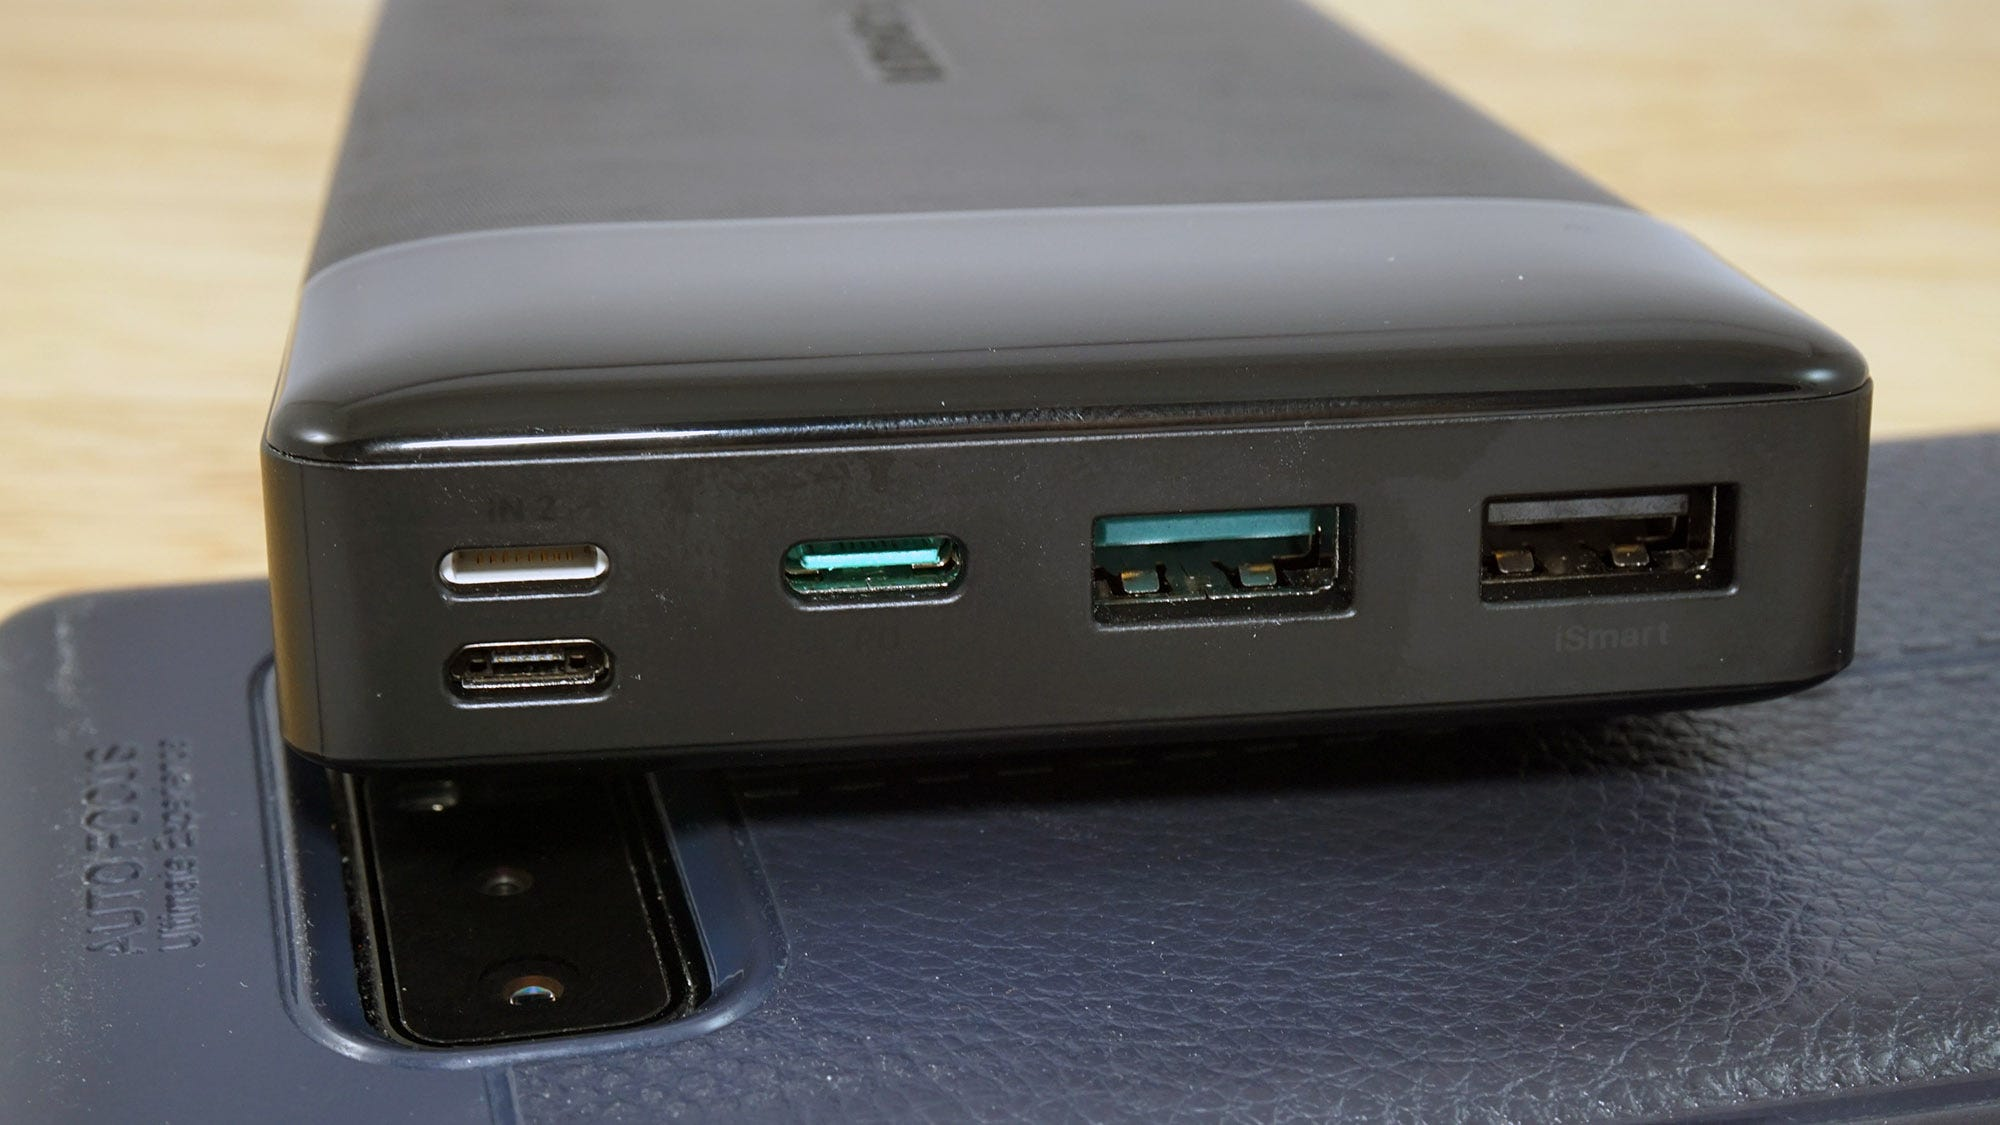 The battery can accept power from Lightning, USB-C, and MicroUSB cables.